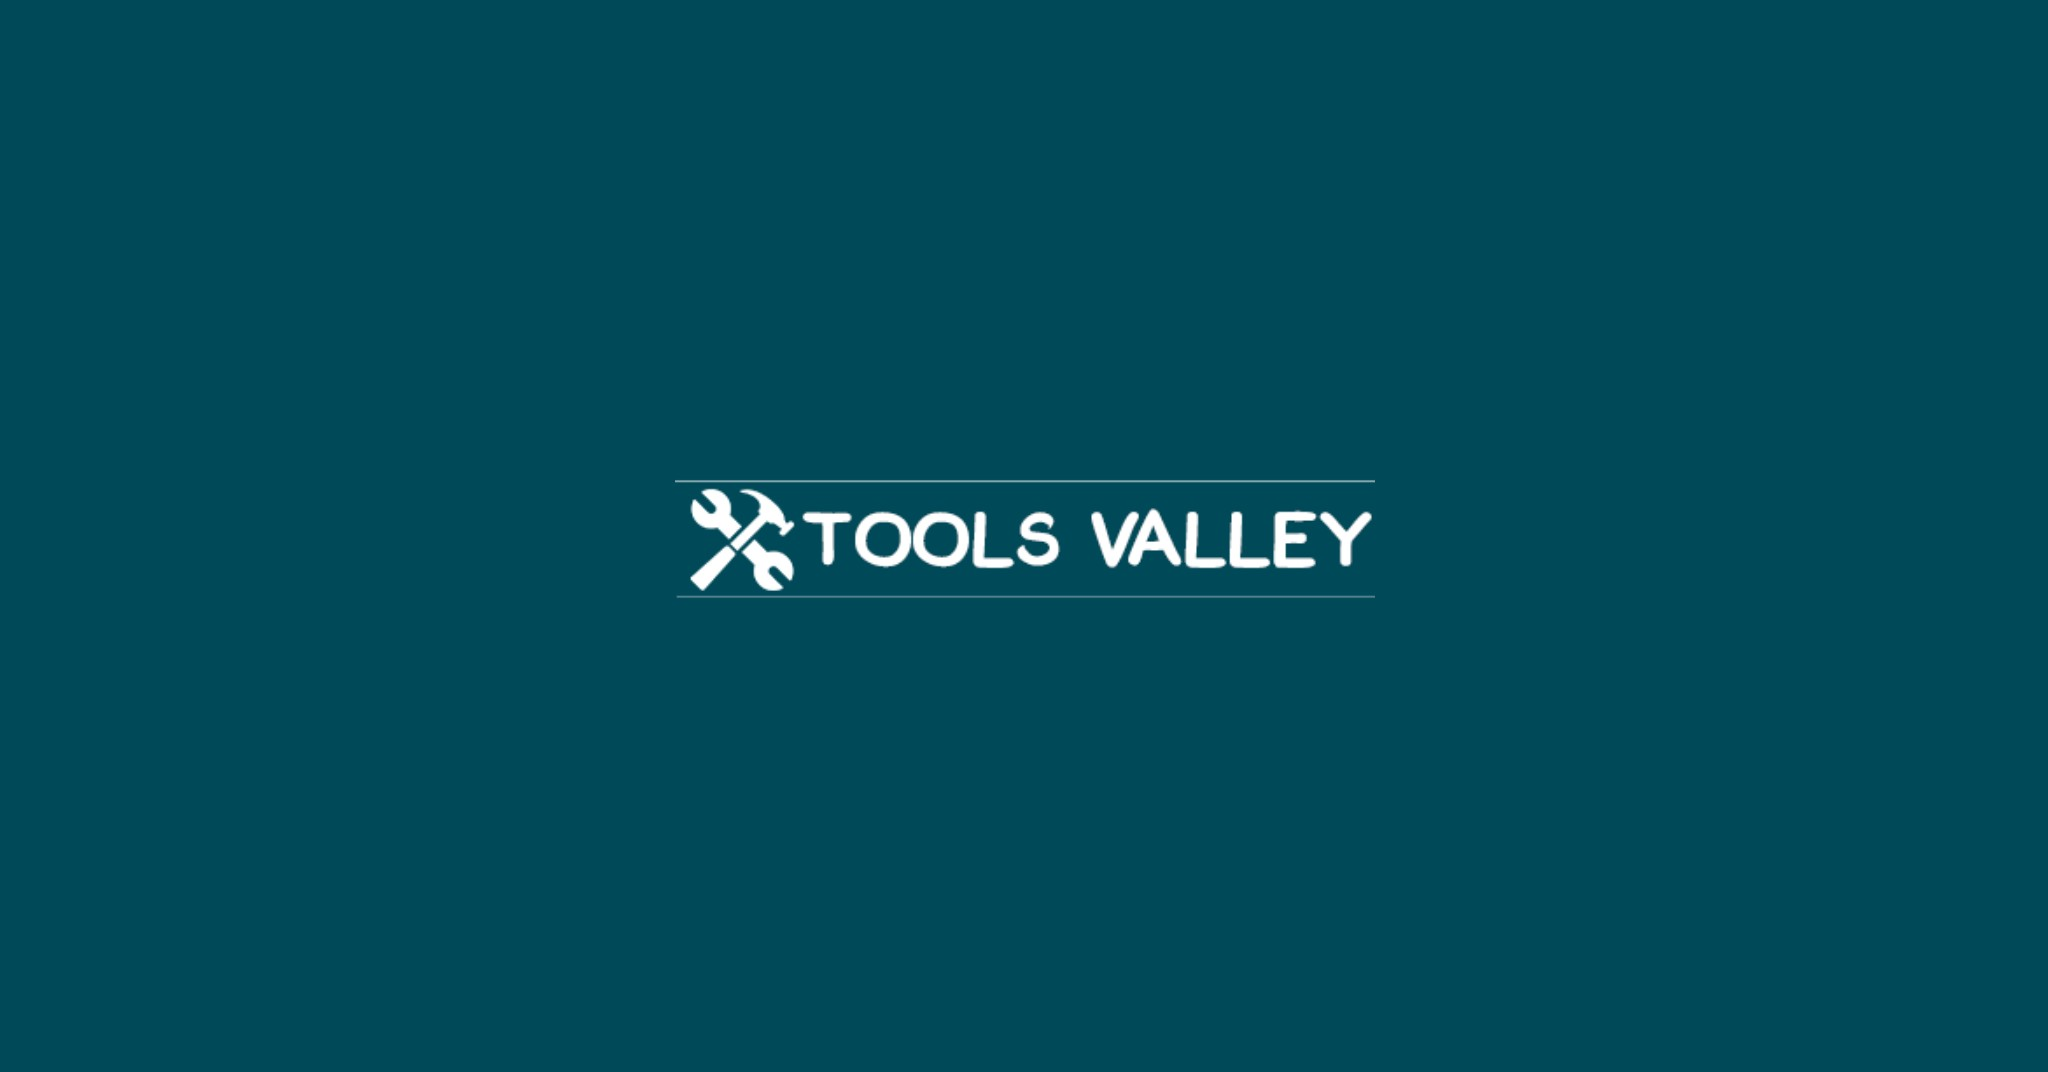 Tools Valley